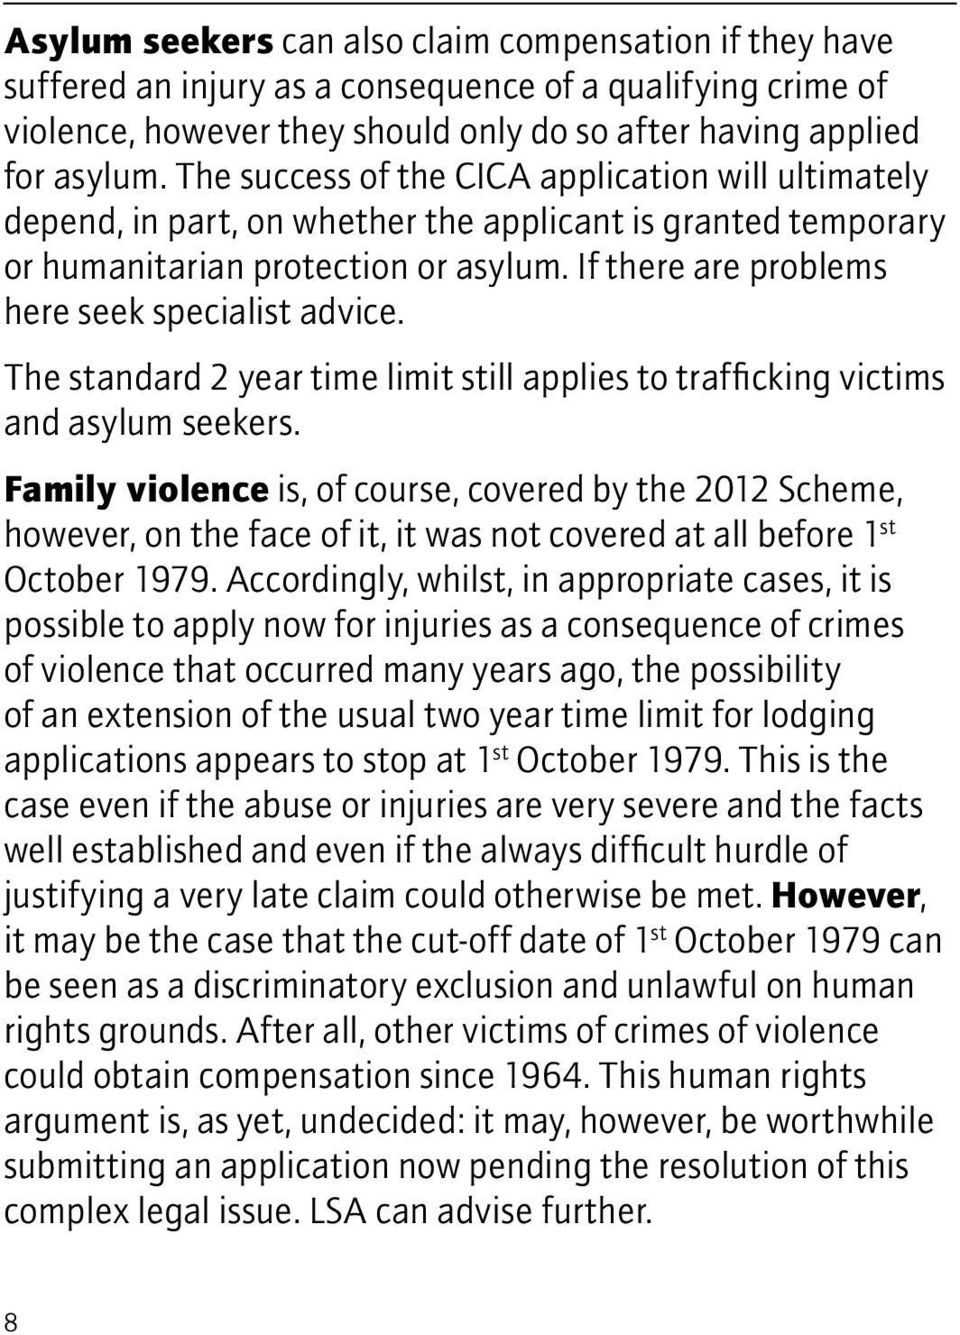 If there are problems here seek specialist advice. The standard 2 year time limit still applies to trafficking victims and asylum seekers.